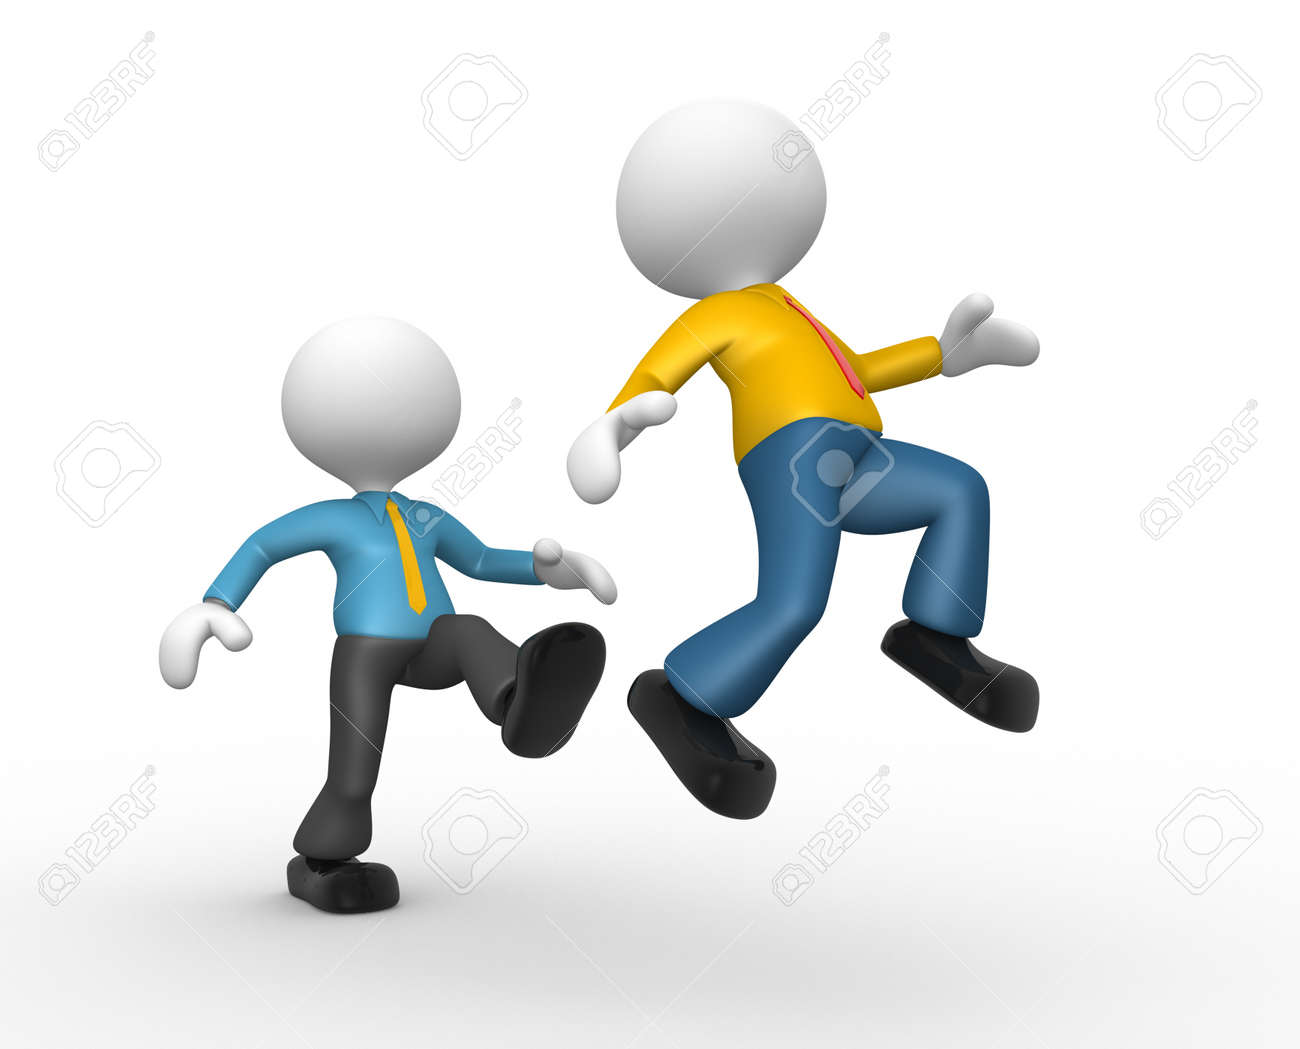 3d people - man, person kicking in the behind the opponent. Stock Photo - 18494643